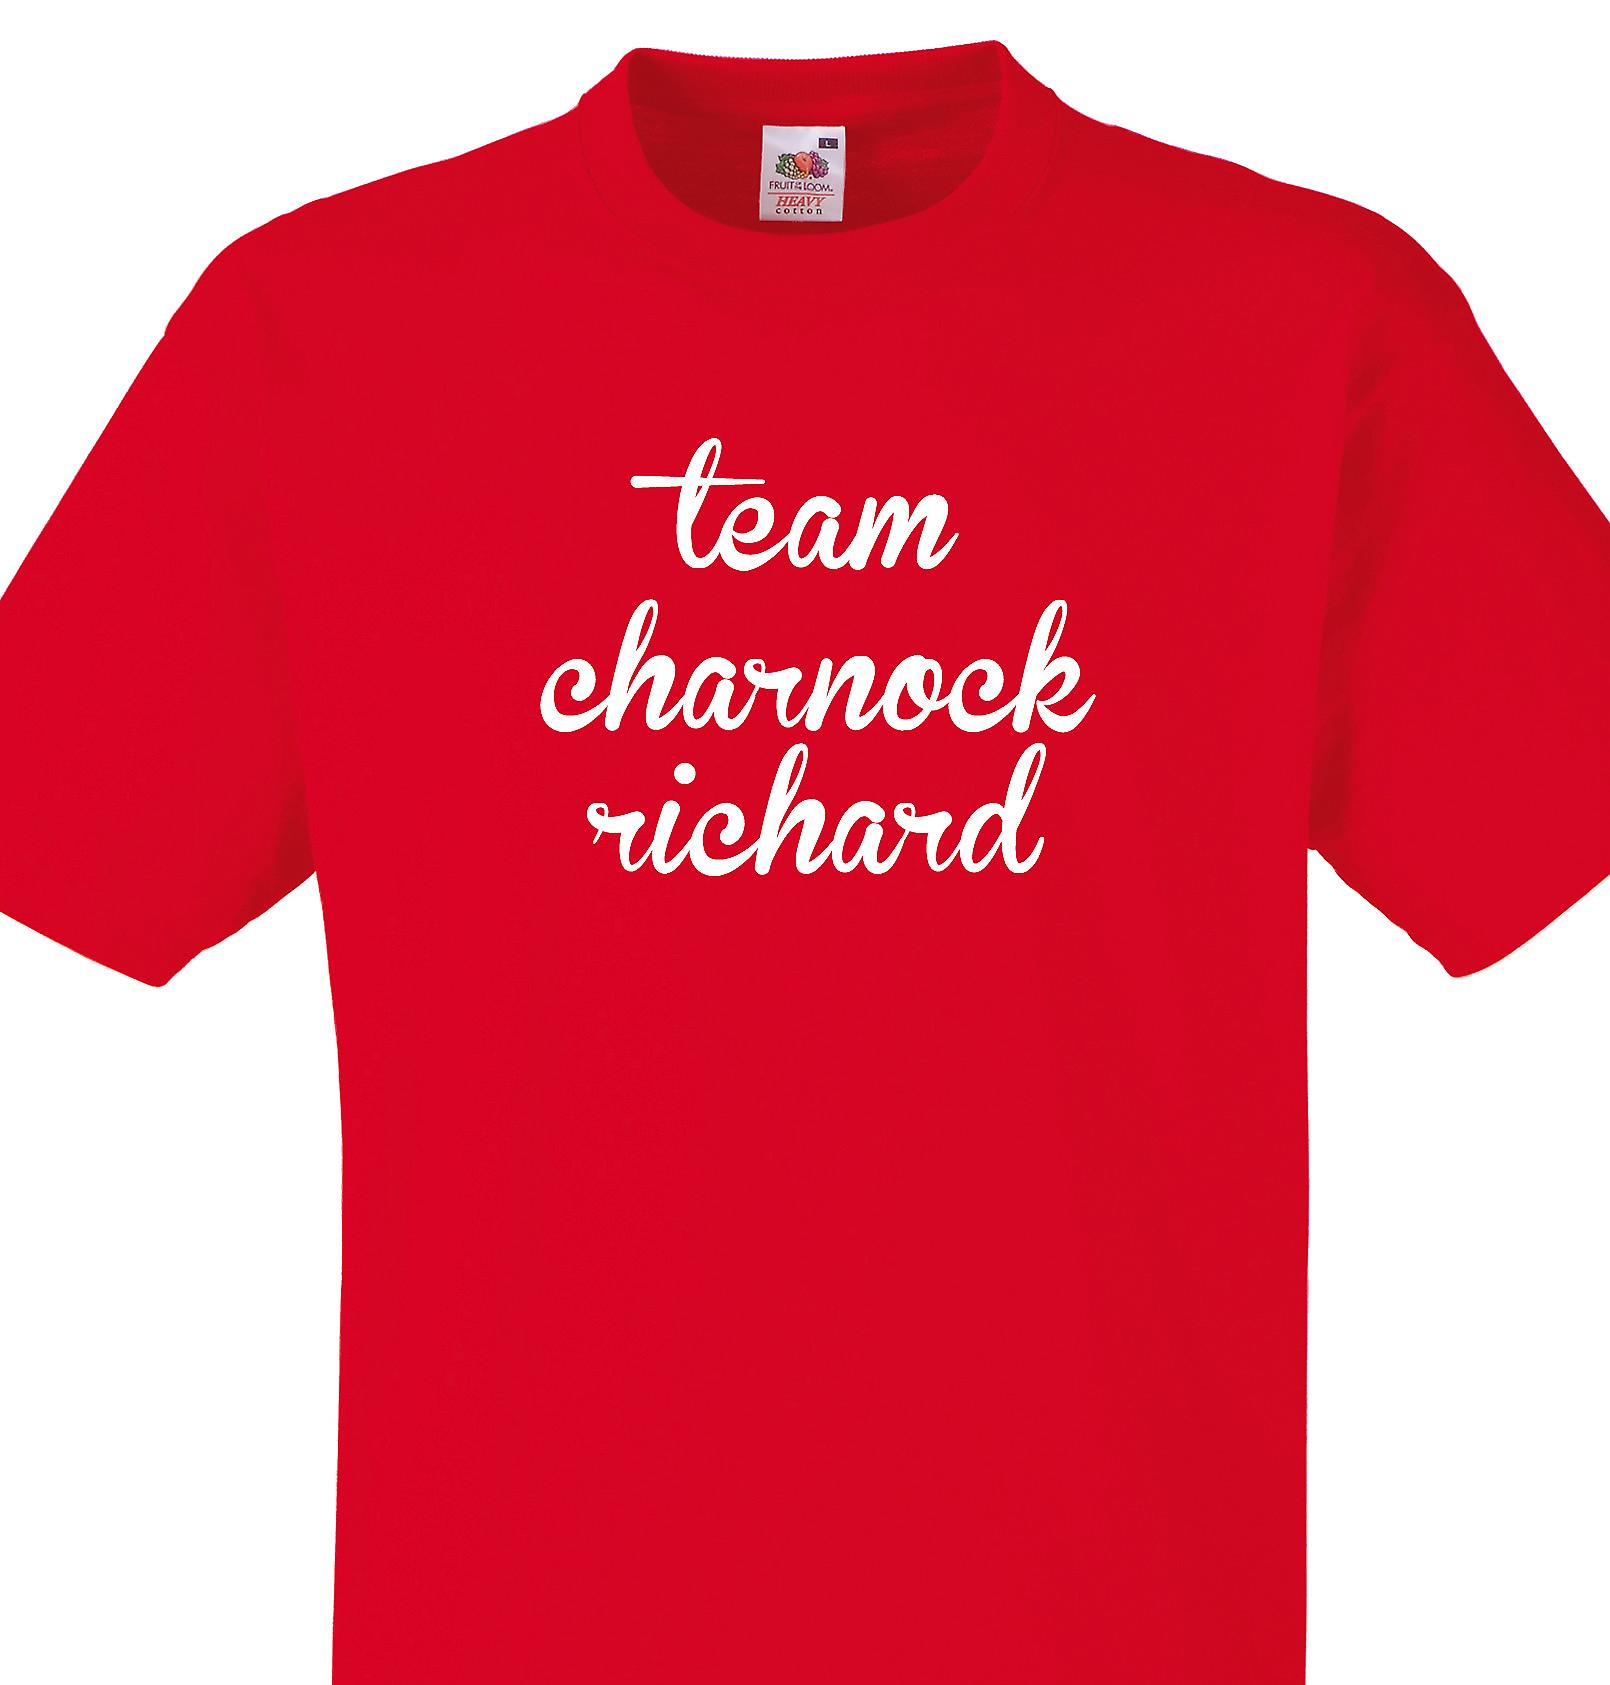 Team Charnock richard Red T shirt